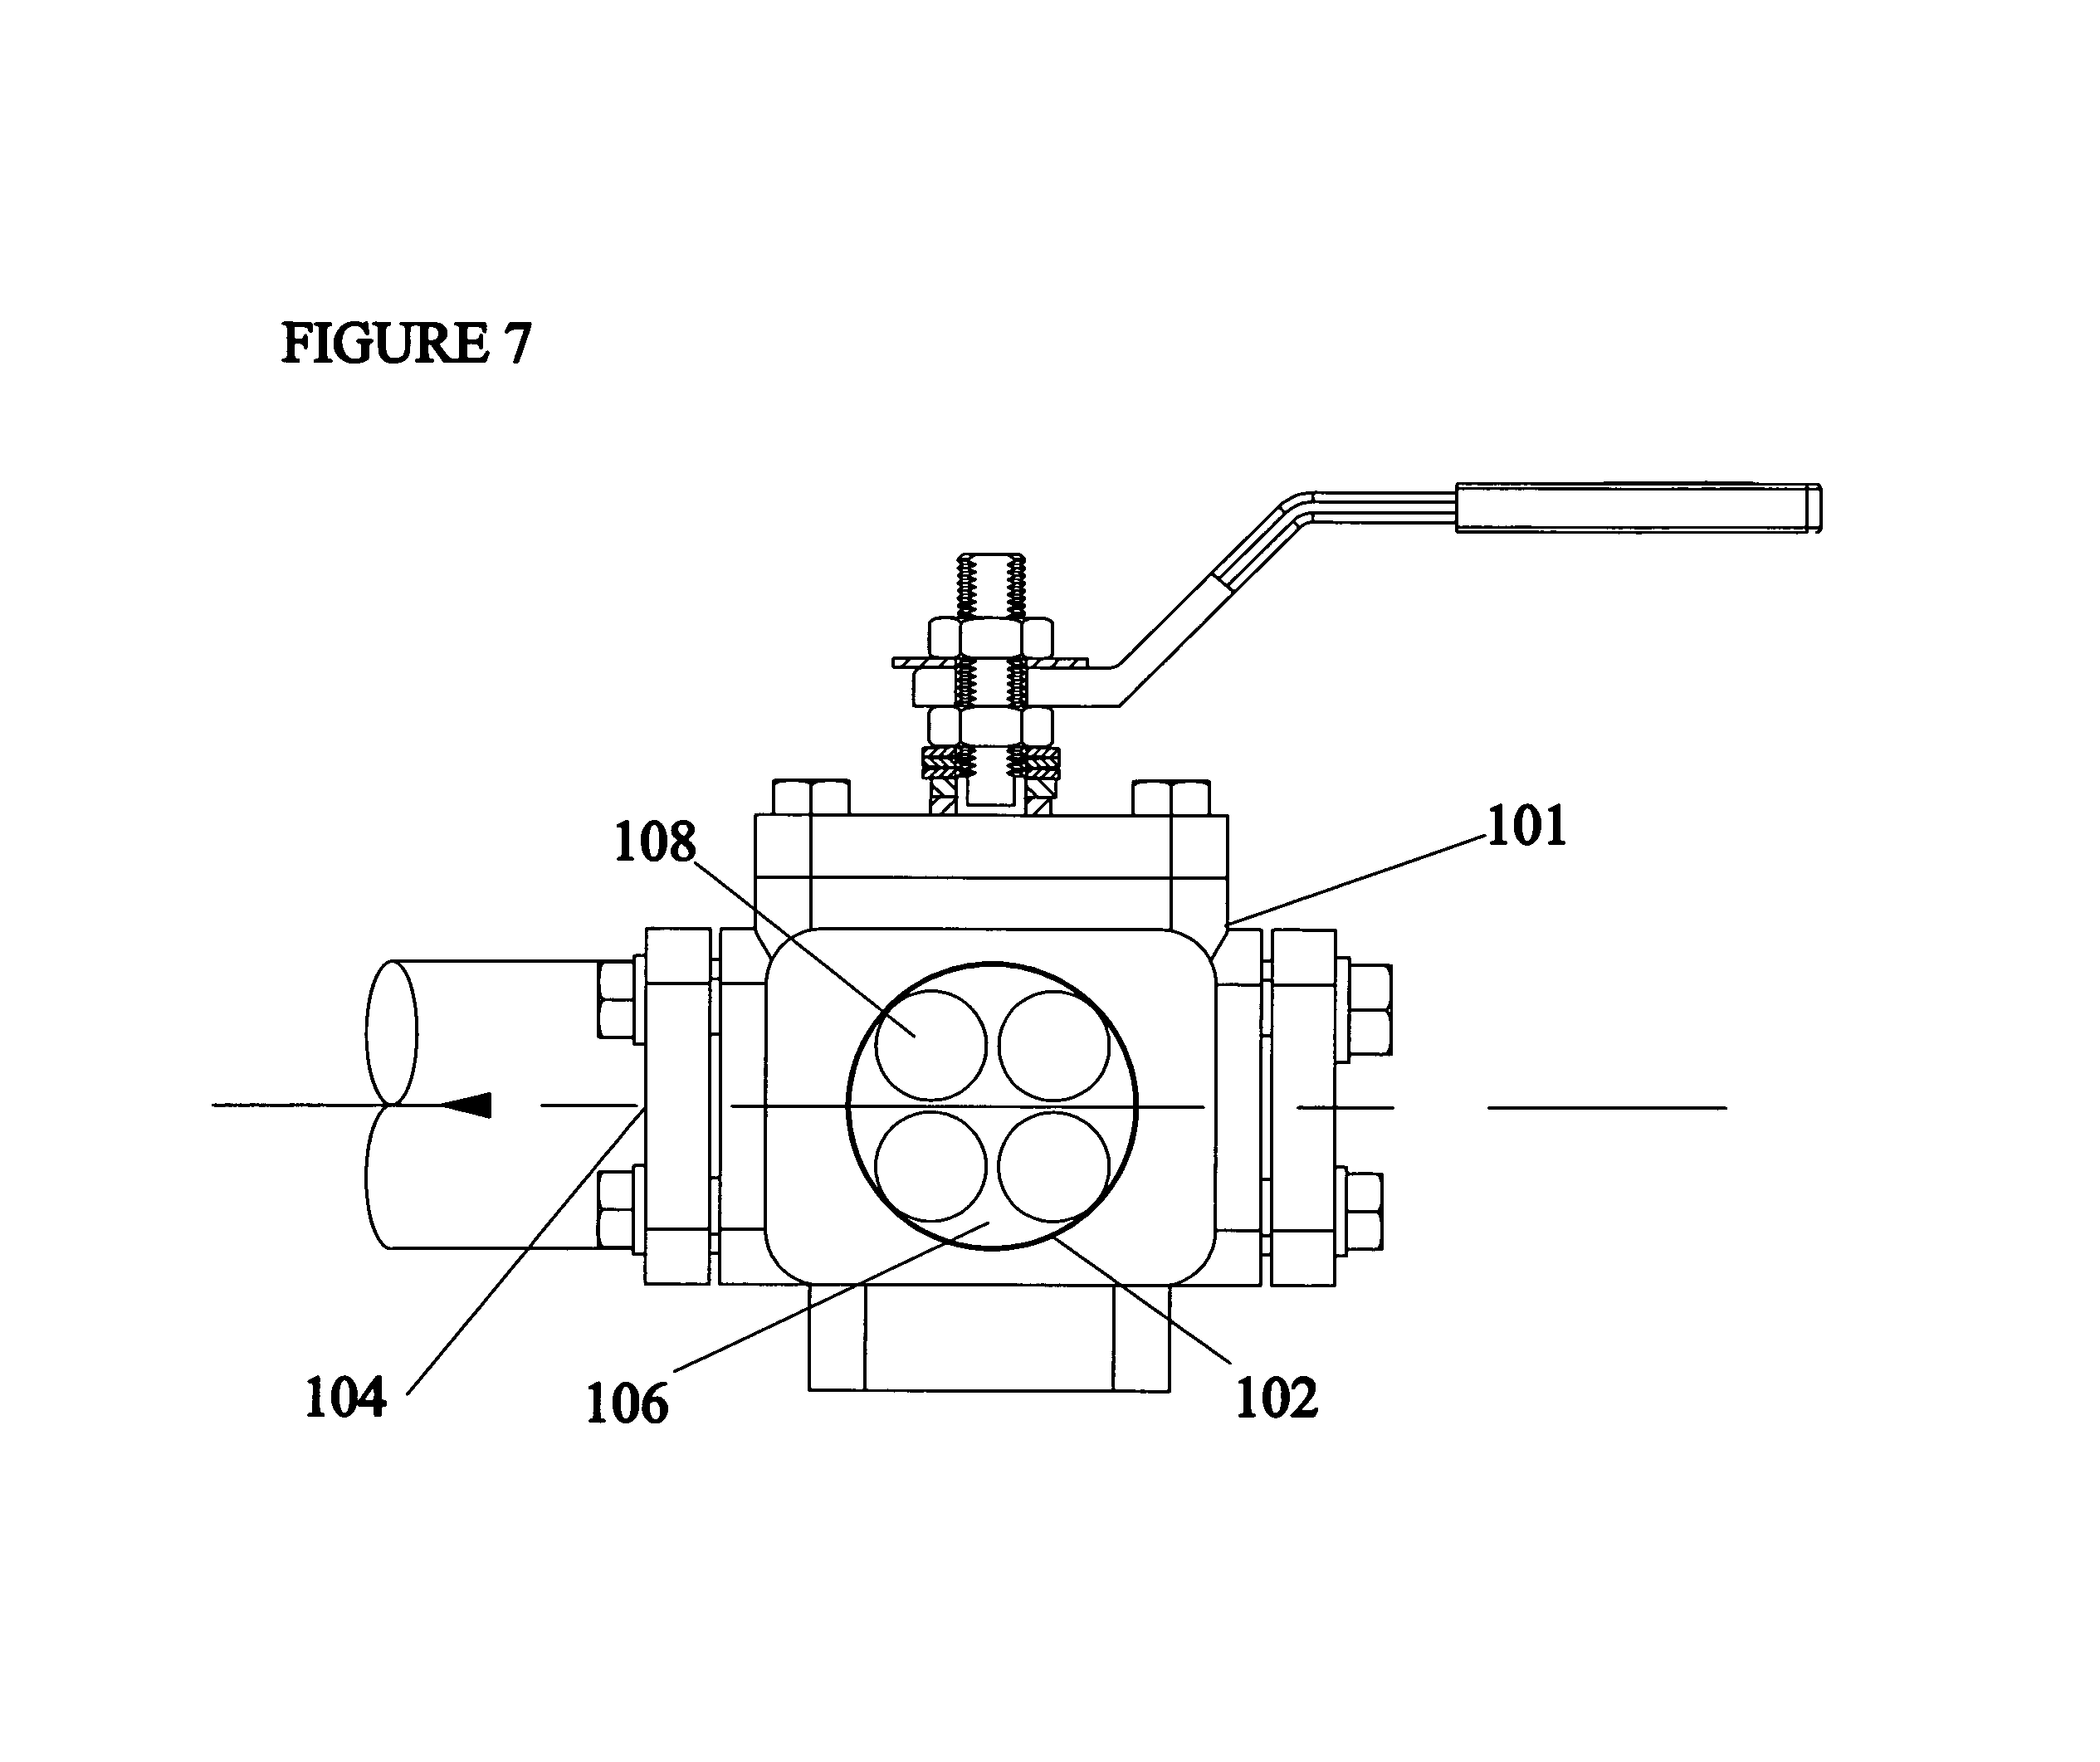 Brevet Us7051760 Three Way Inline Piggable Branch Valve Google The Second Method Is To Connect Receptacle By Use Of Pig Patent Drawing